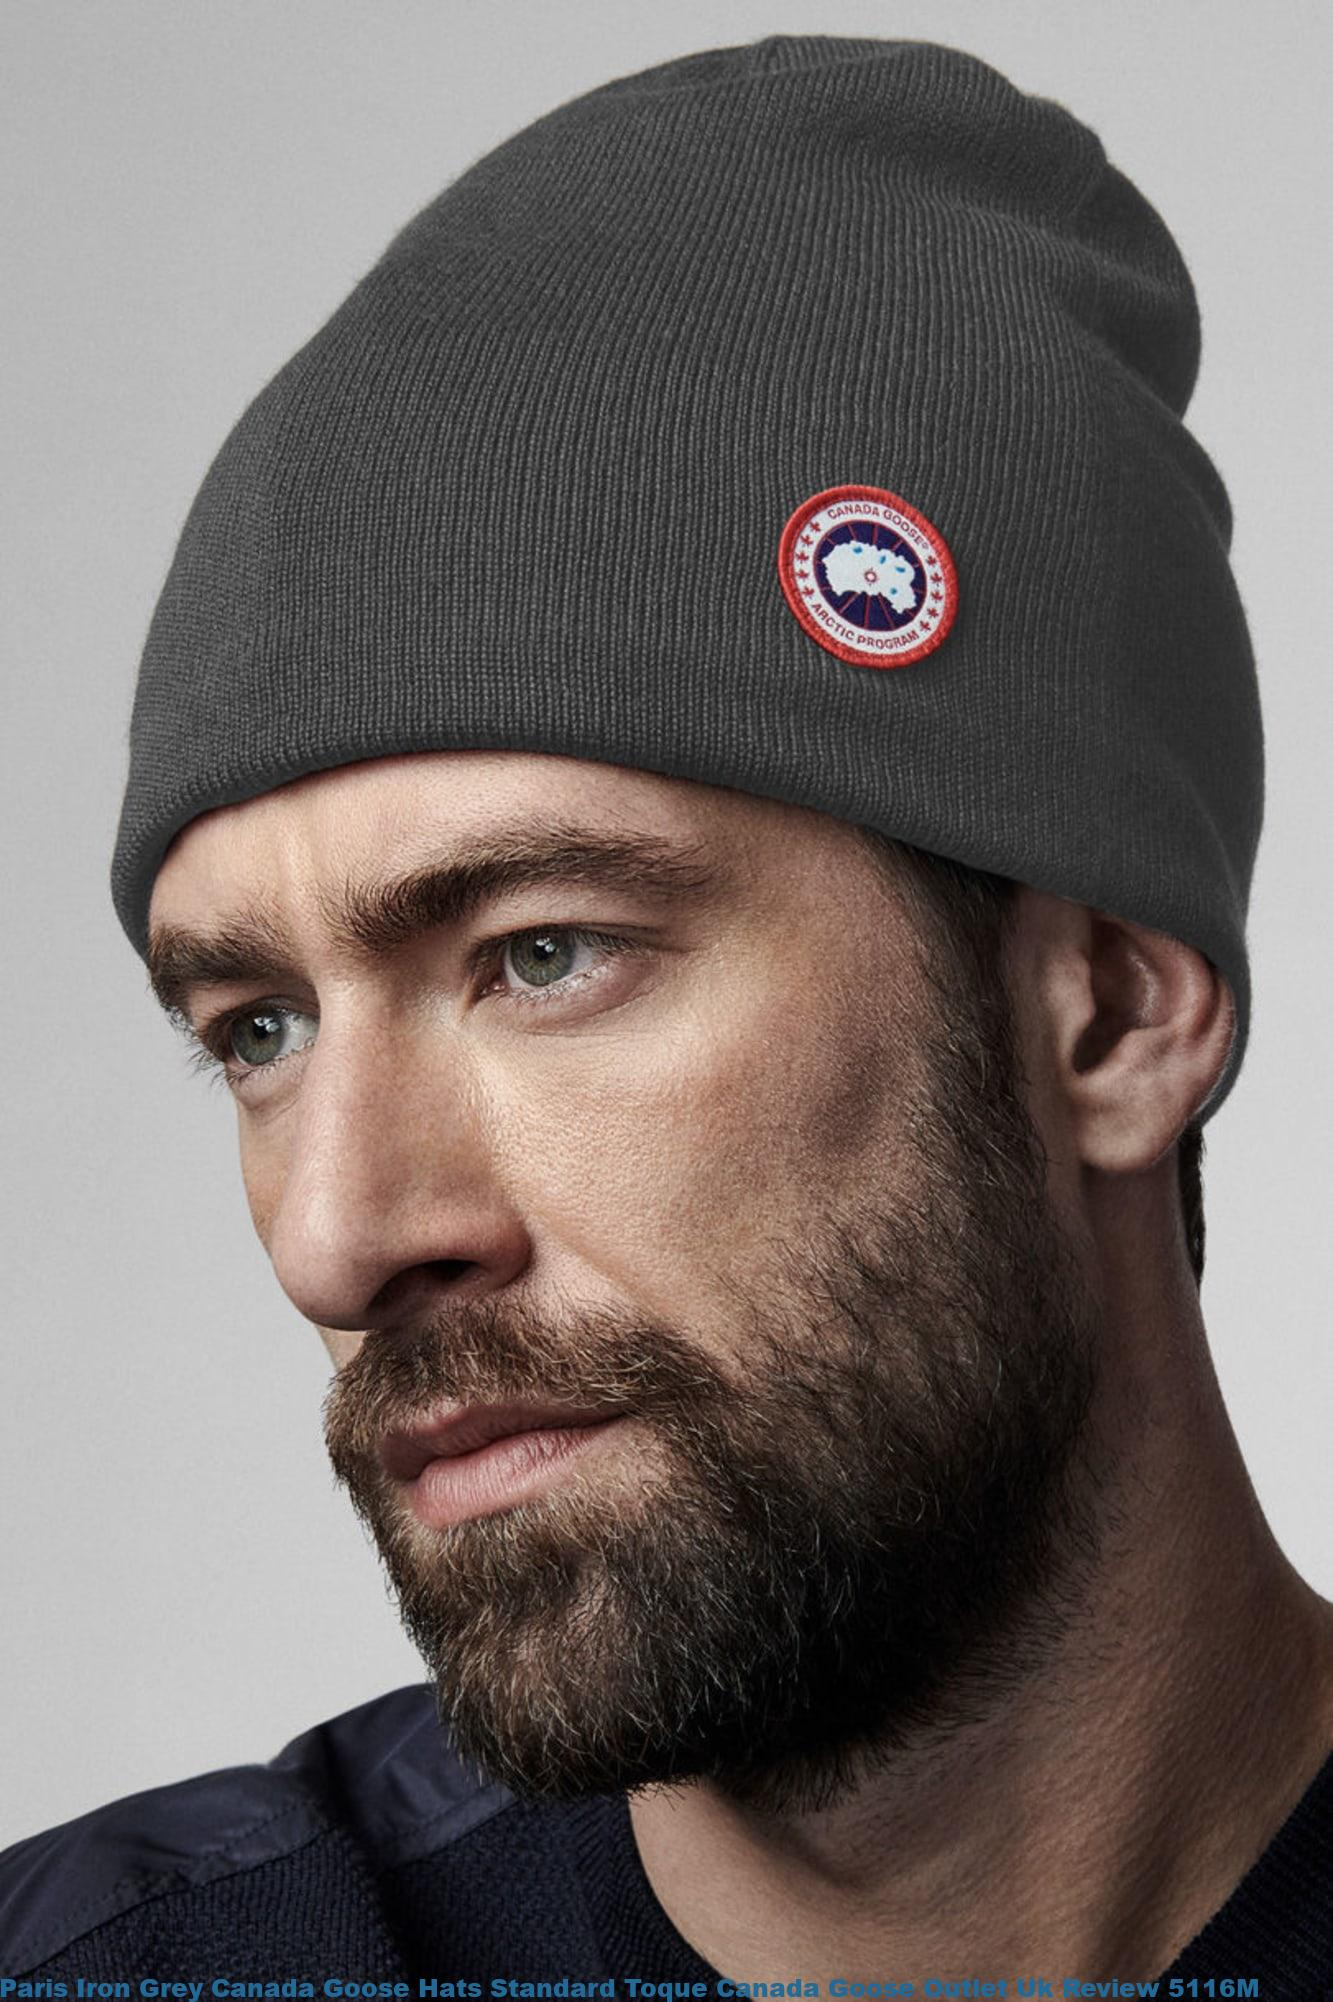 Paris Iron Grey Canada Goose Hats Standard Toque Canada Goose Outlet Uk Review 5116m Cheap Canada Goose Jackets Outlet Sale With 80 Off And Free Shipping